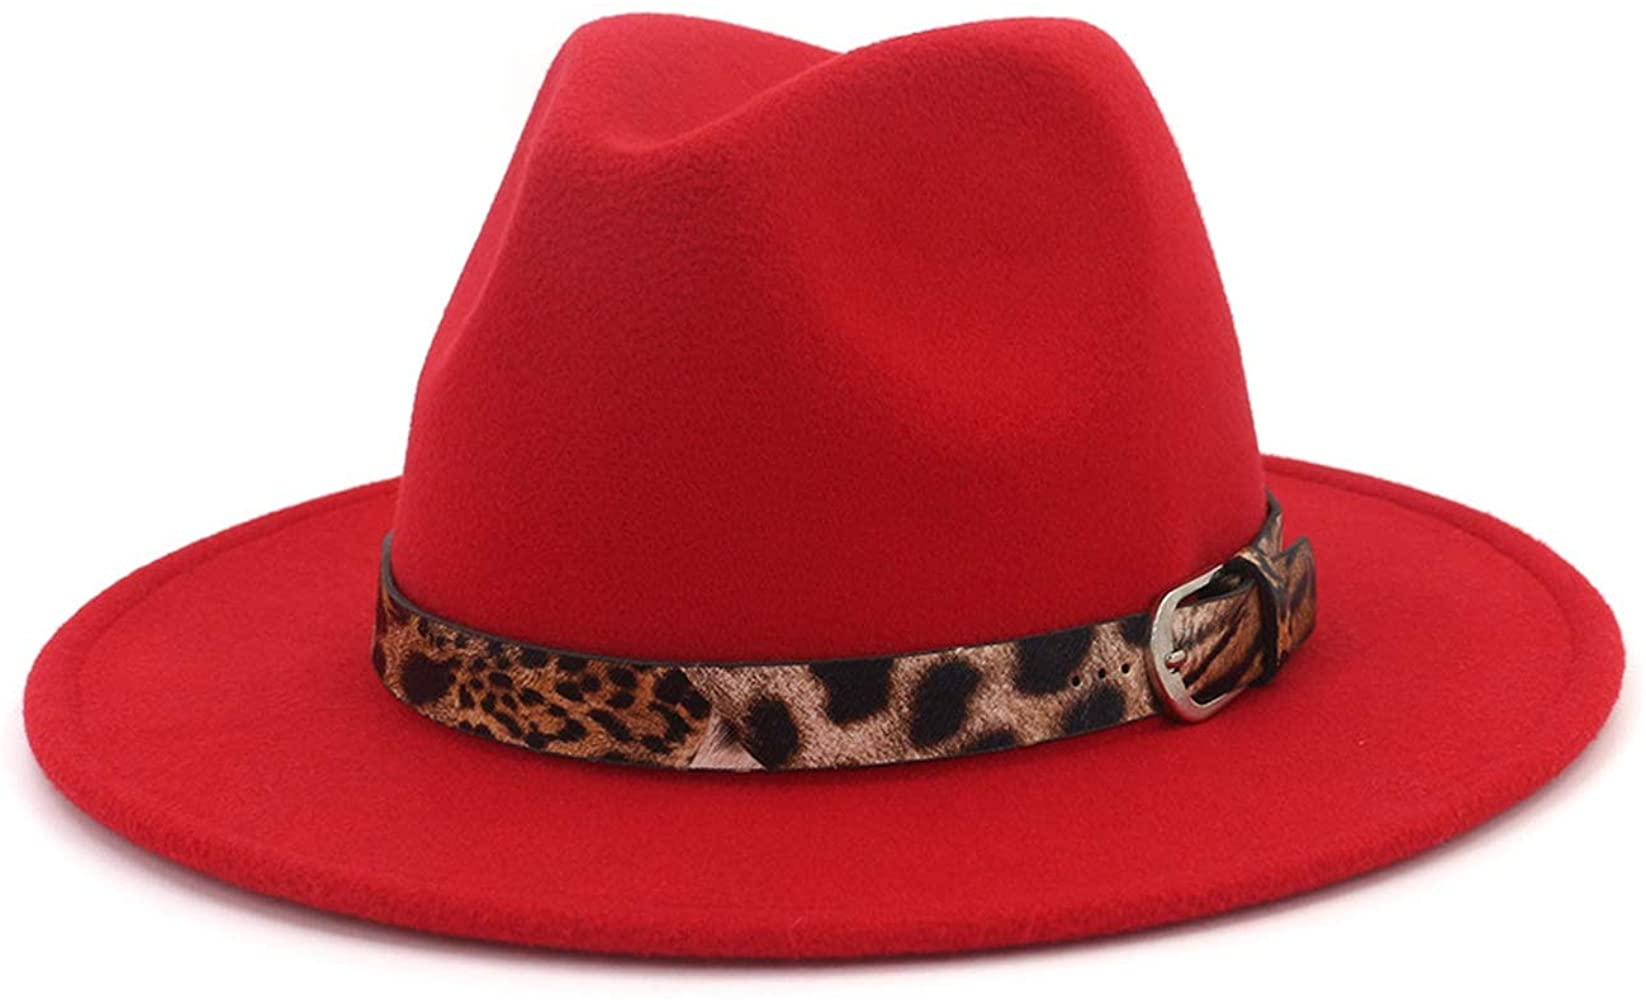 New Fall Collection | Fire Engine Red Fedora Hat